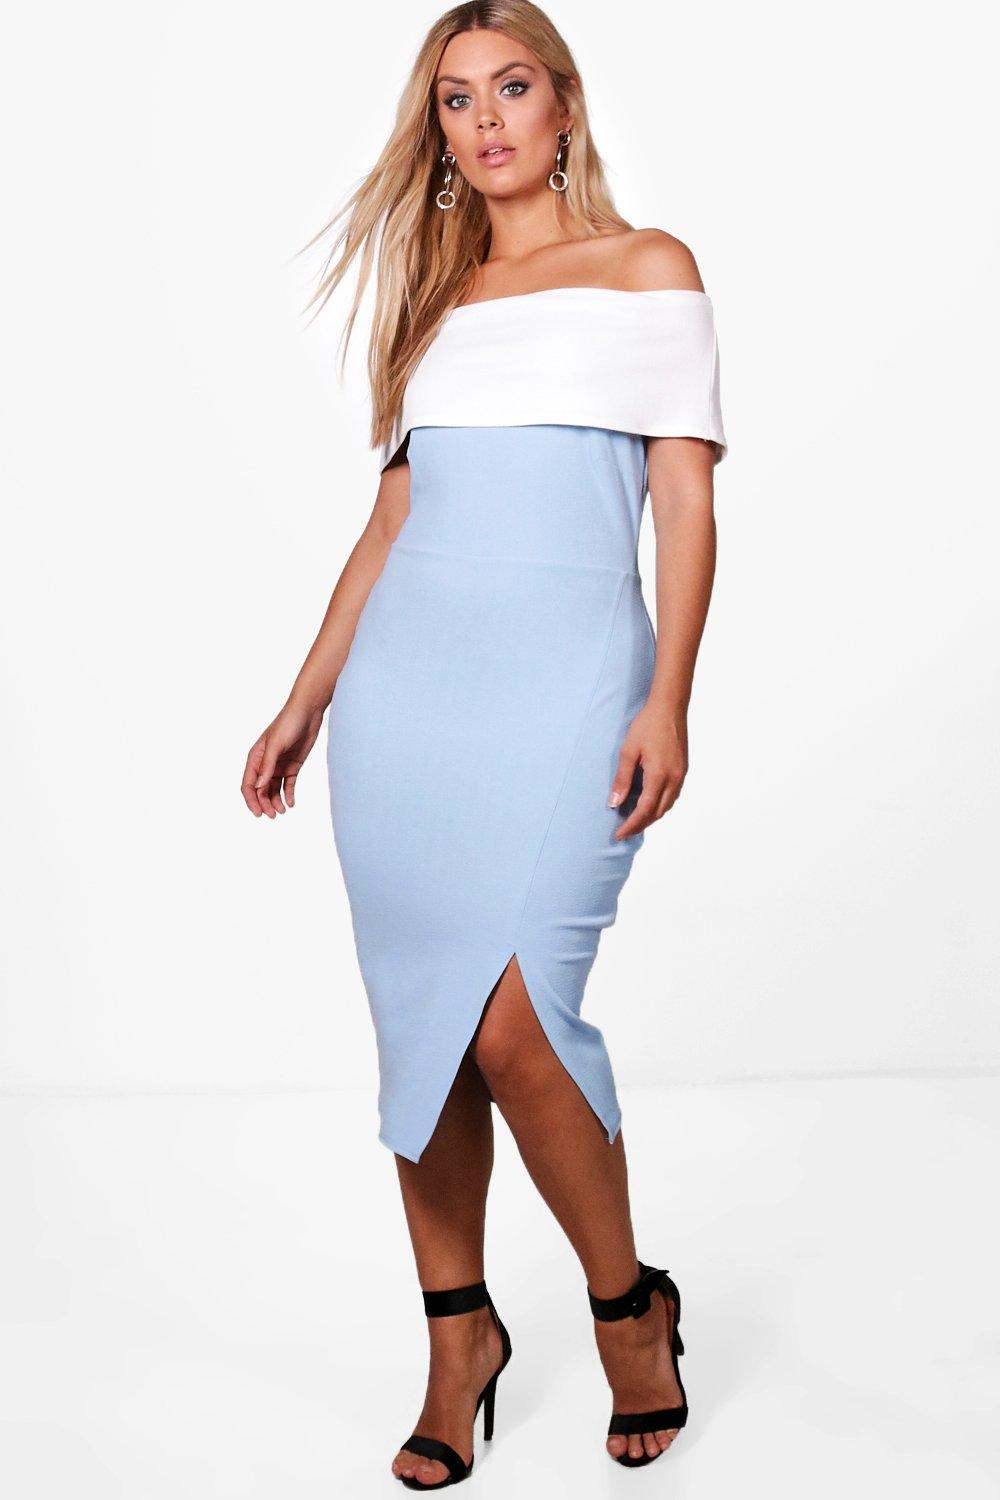 Boohoo-Plus-Alex-Robe-Moulante-Contrastee-A-Epaules-Denudees-pour-Femme